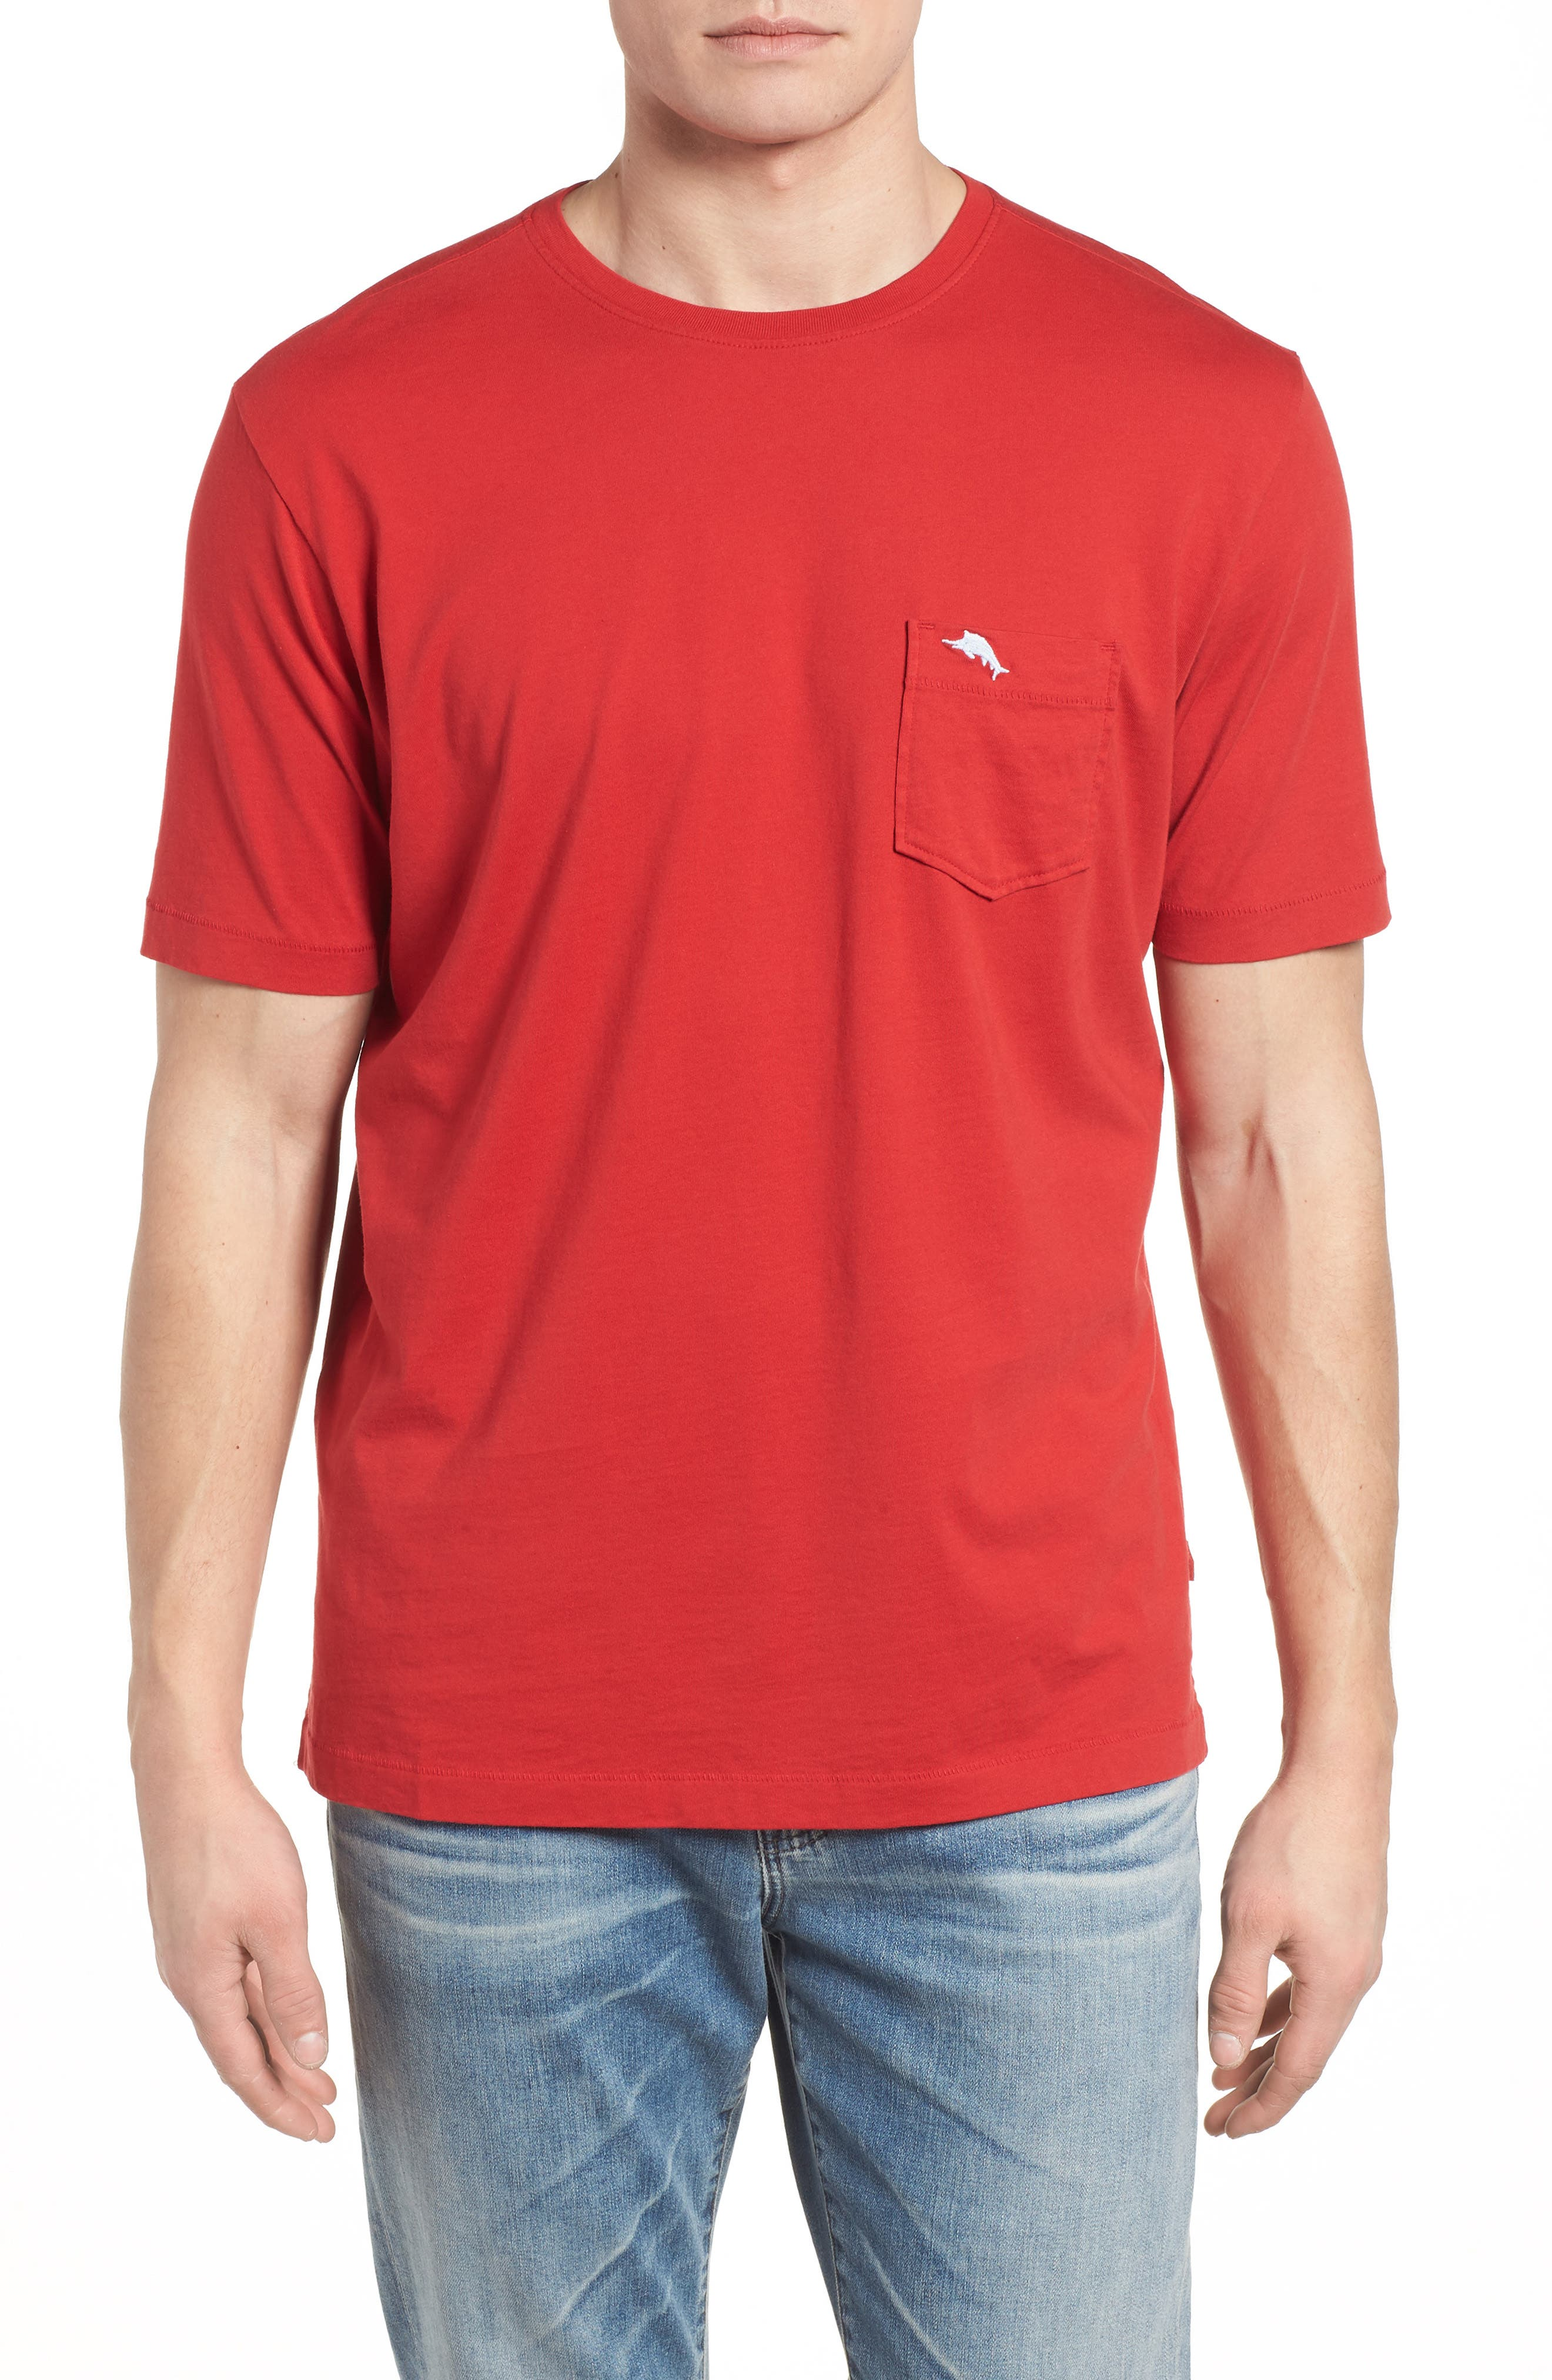 Bali Skyline T-Shirt,                         Main,                         color, Regal Red